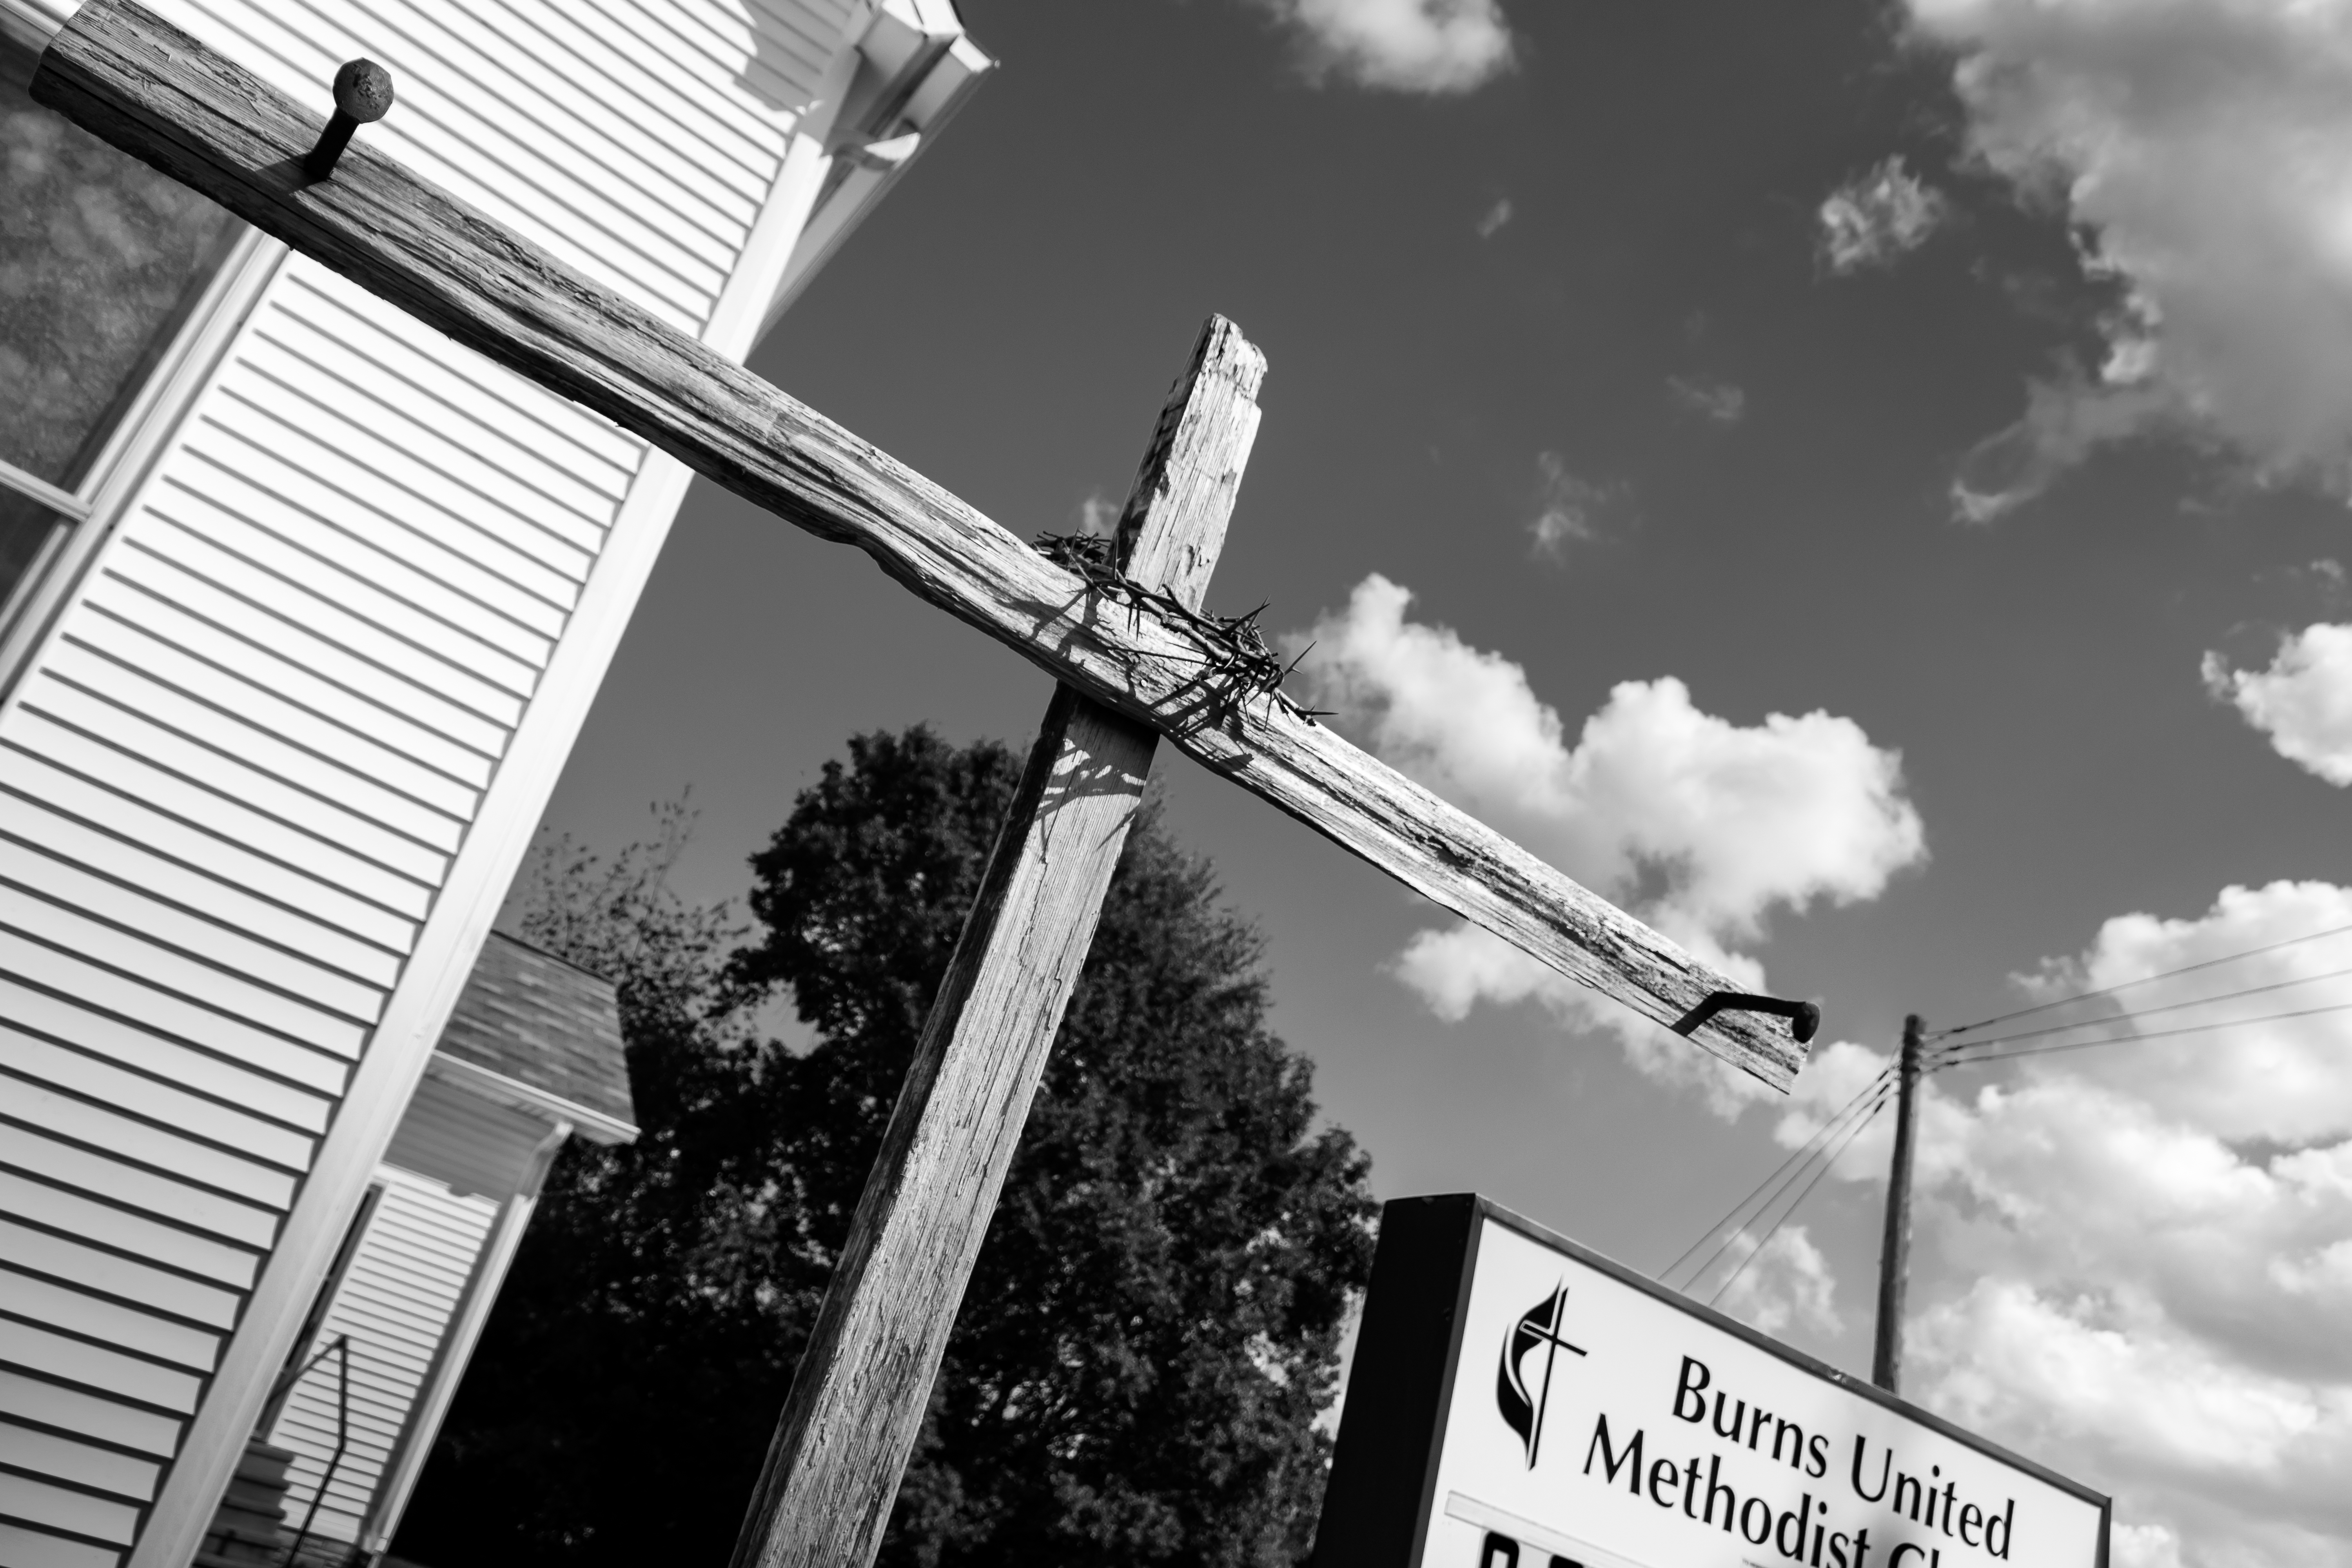 Cross by front entrance